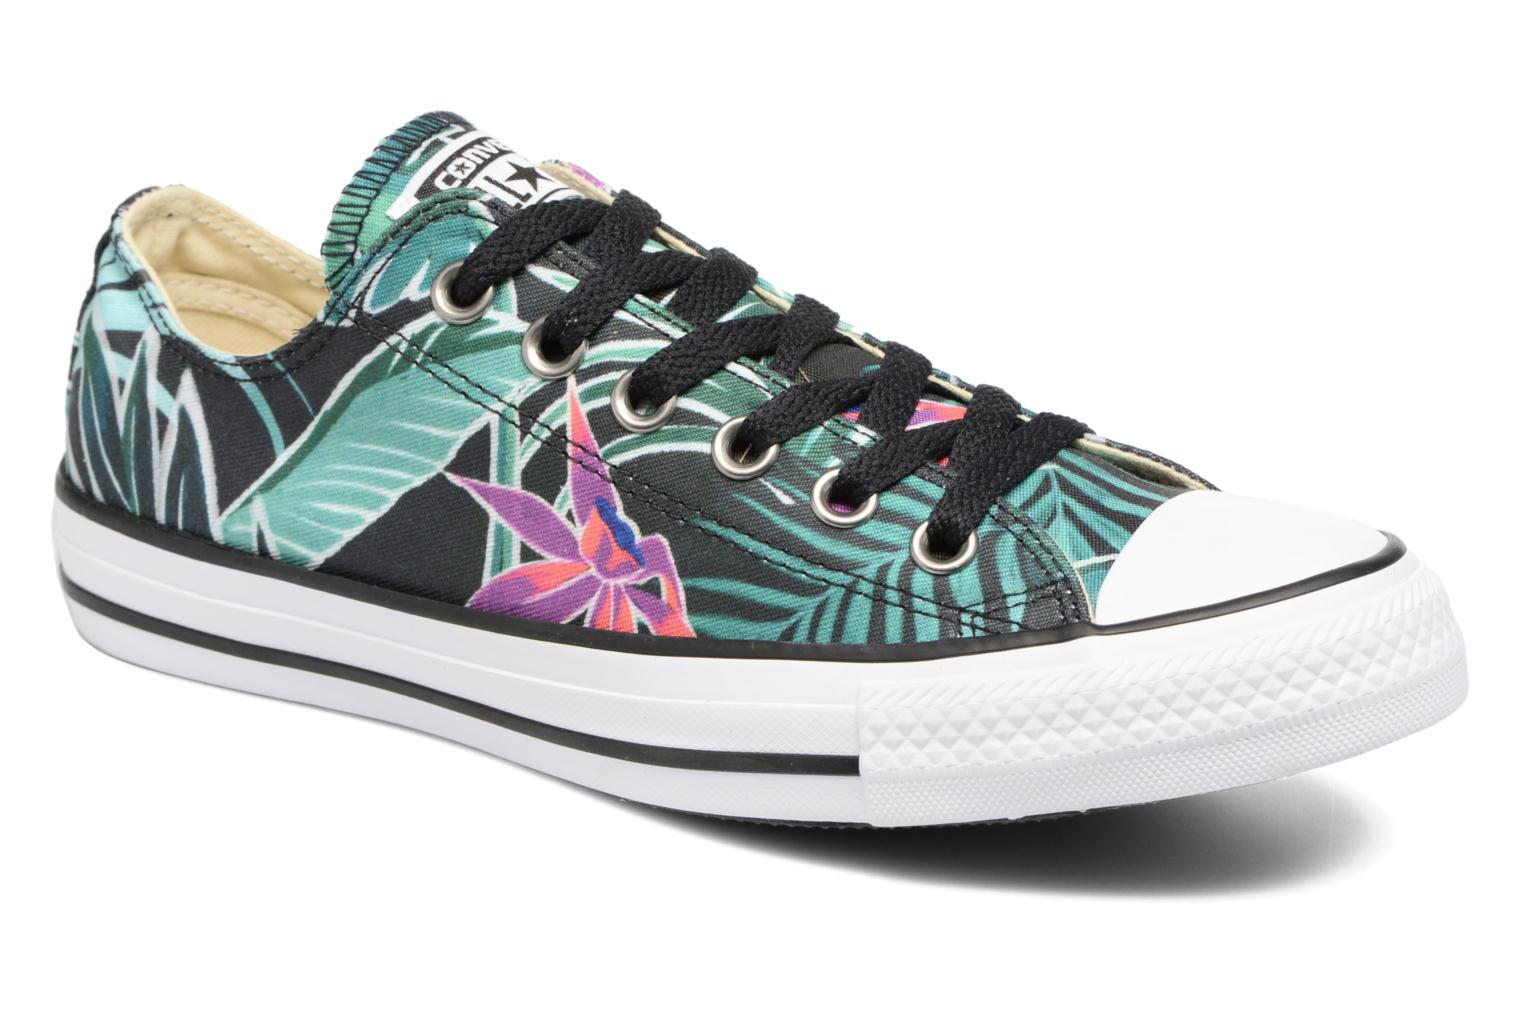 95e1f1aecd30 Trainers Converse Chuck Taylor All Star Ox Tropical Print W Multicolor  detailed view  Pair view